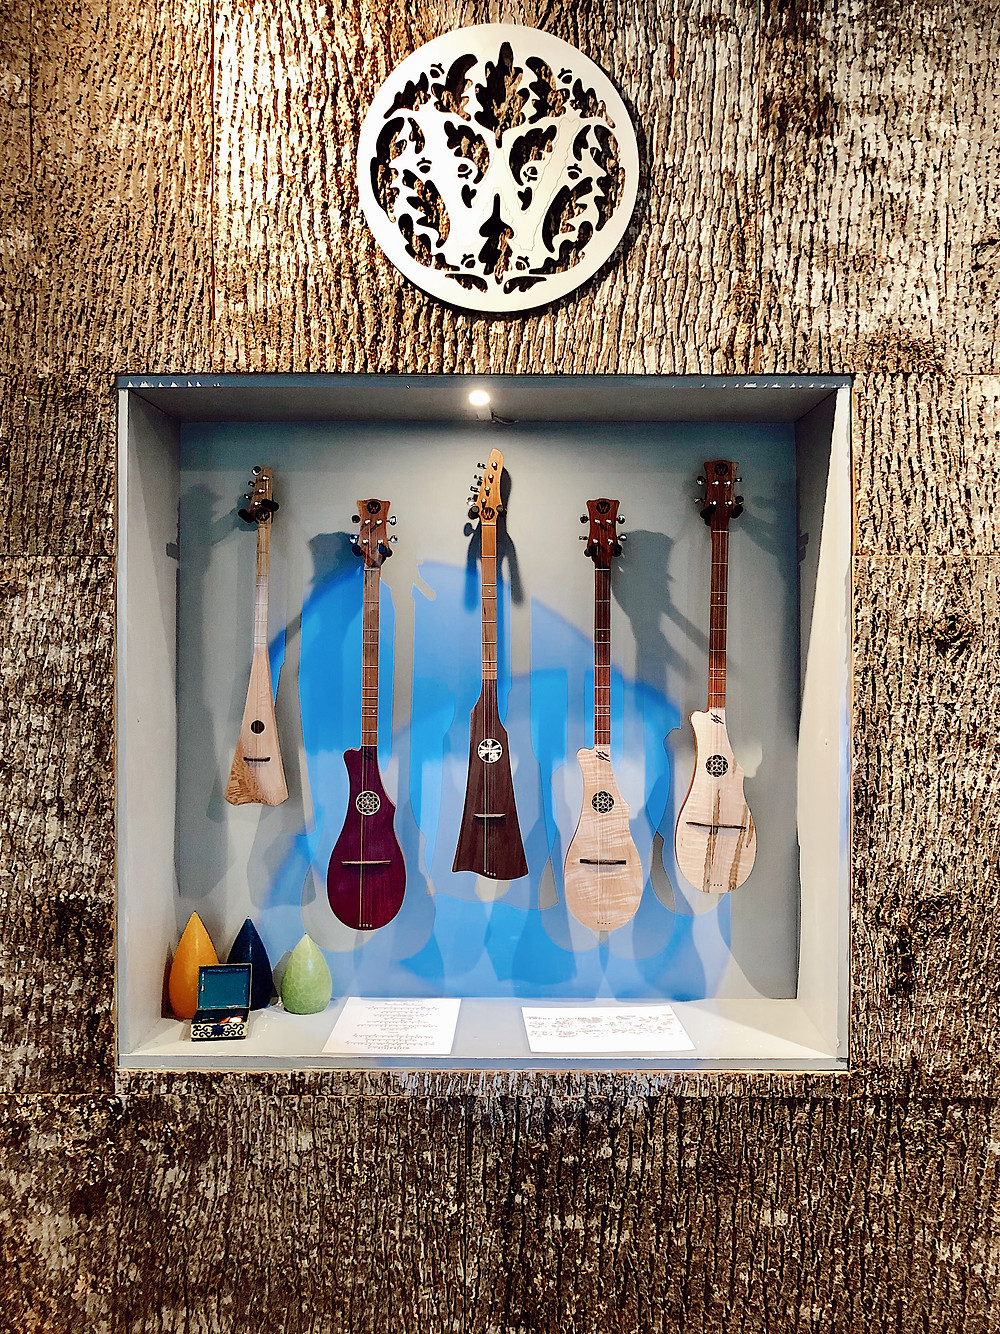 Woodrow instruments hang in niche of real wooden wall at Woodrow Instrument Company at Grove Arcade in Asheville North Carolina. Local travel guide and lifestyle blogger The Tony Townie.